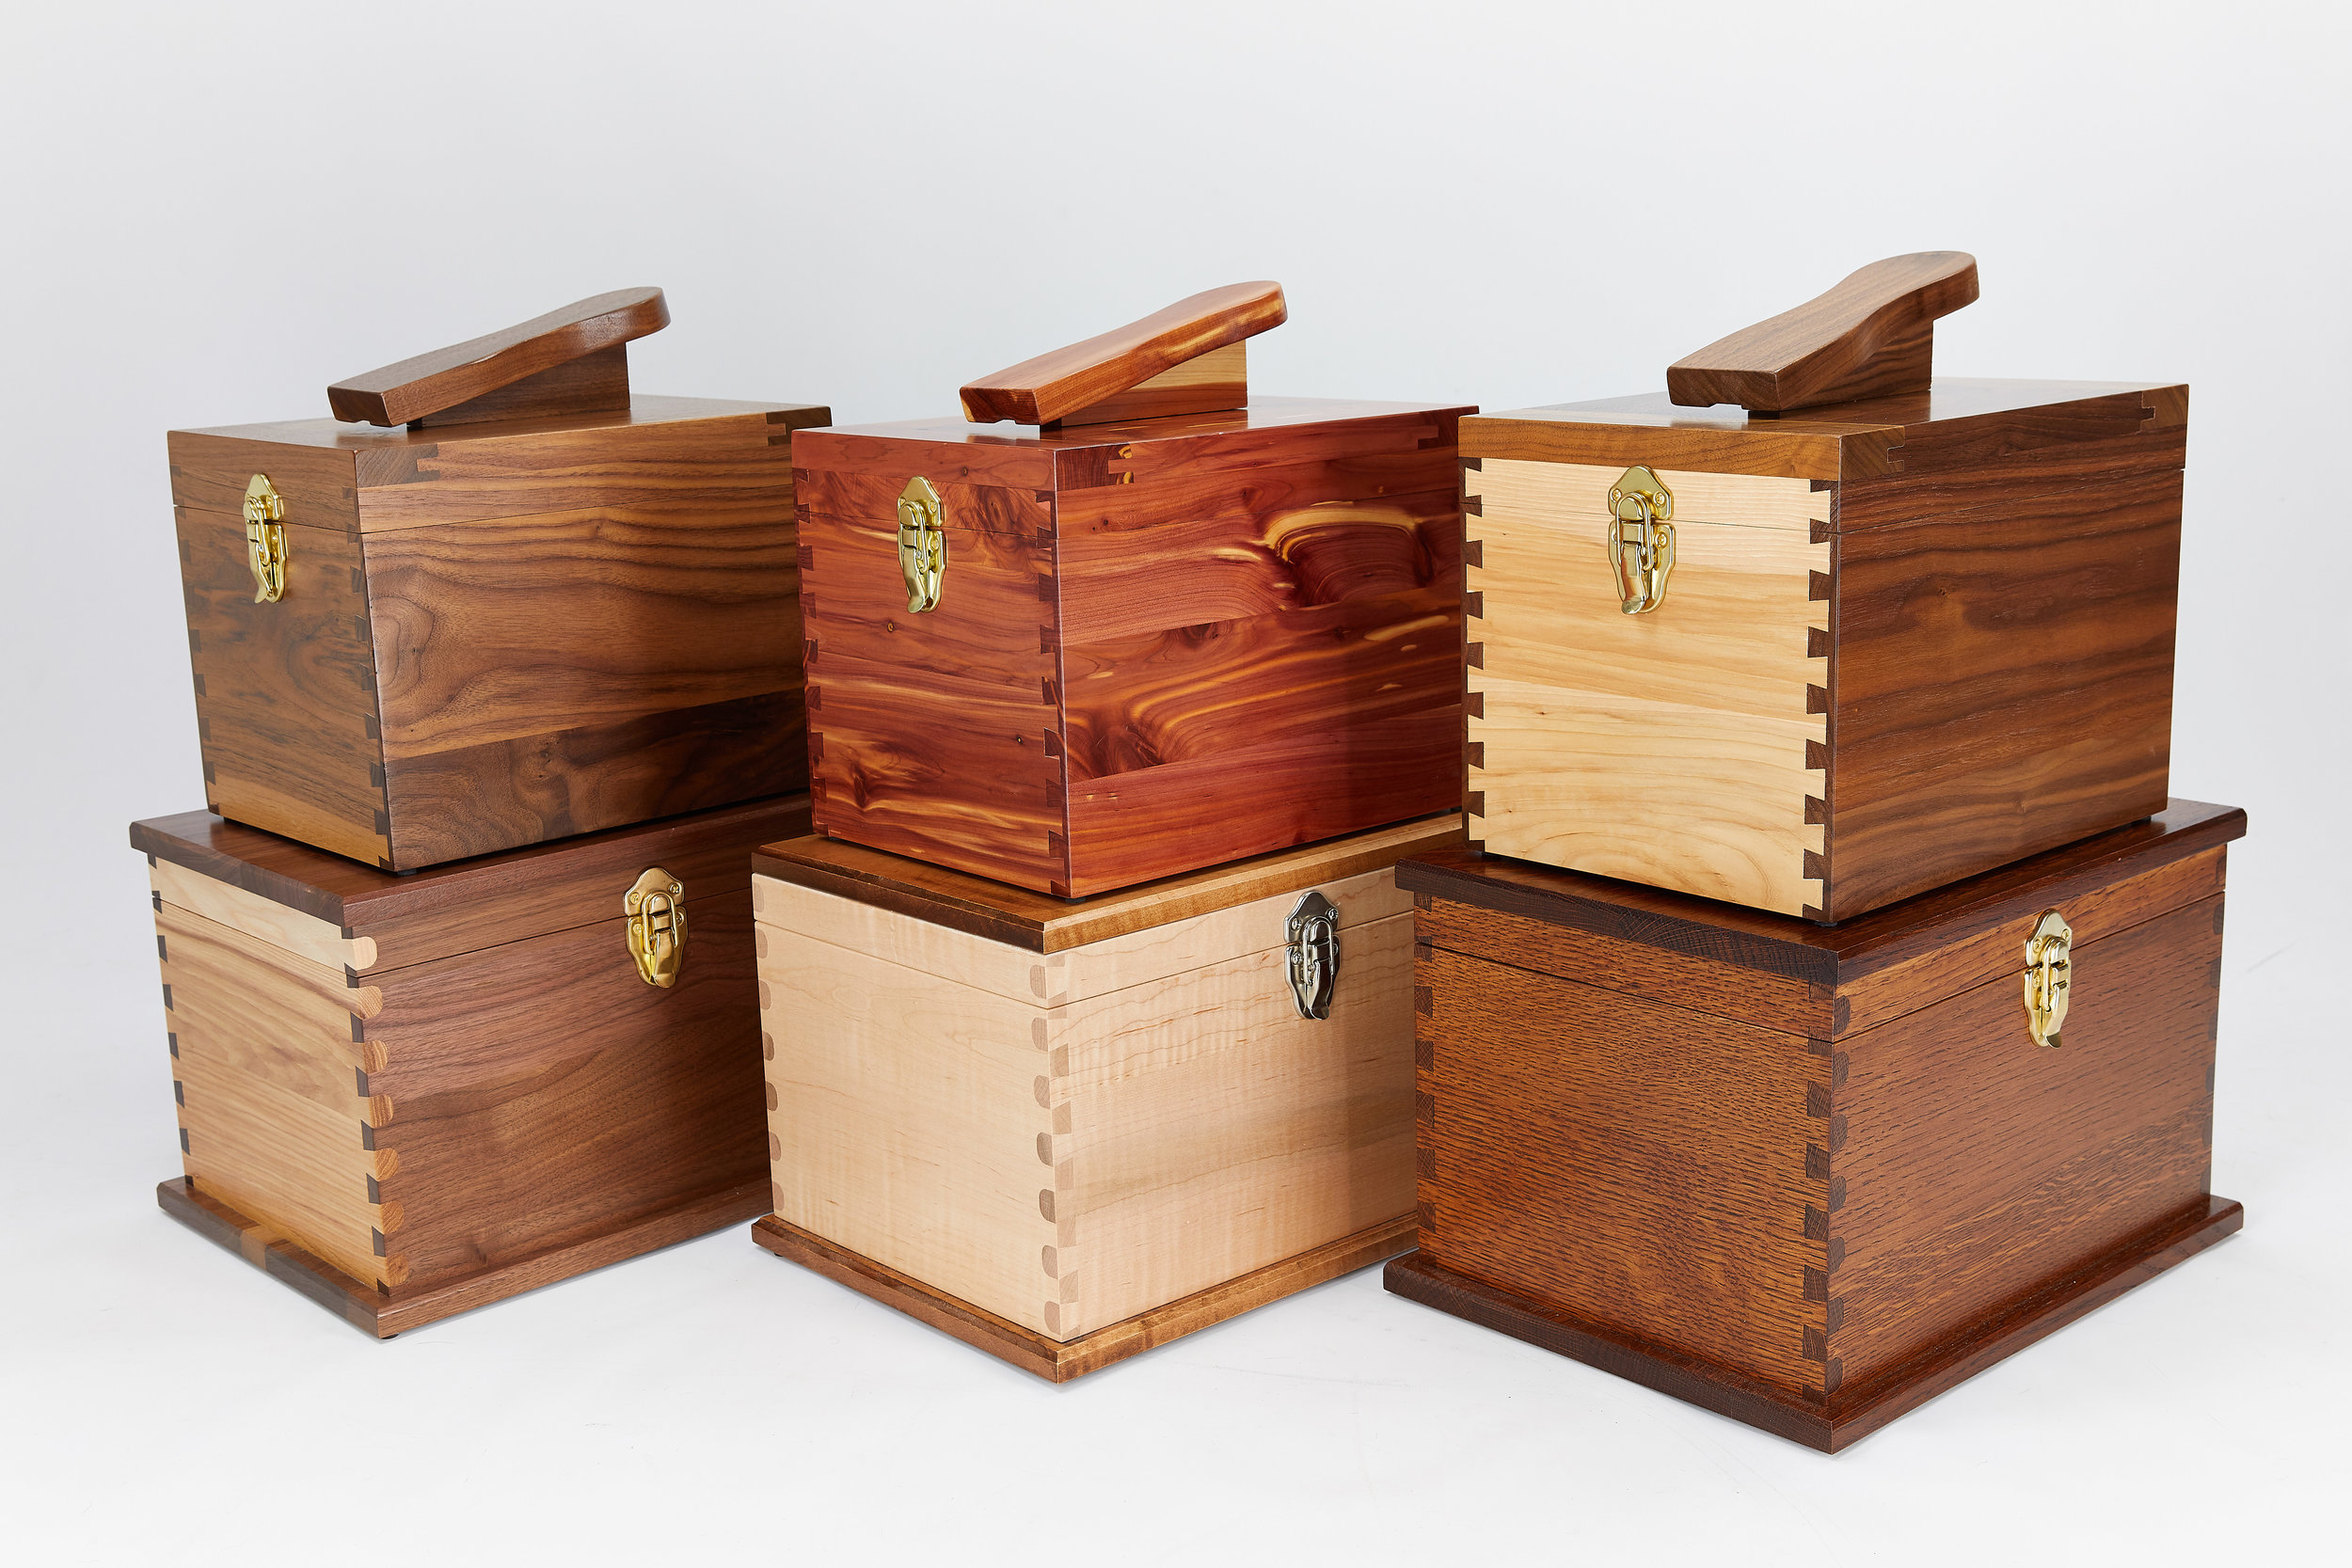 Shoe Shine kit or Keepsake?In five gorgeous hardwoods, these boxes are almost too pretty for polish! -